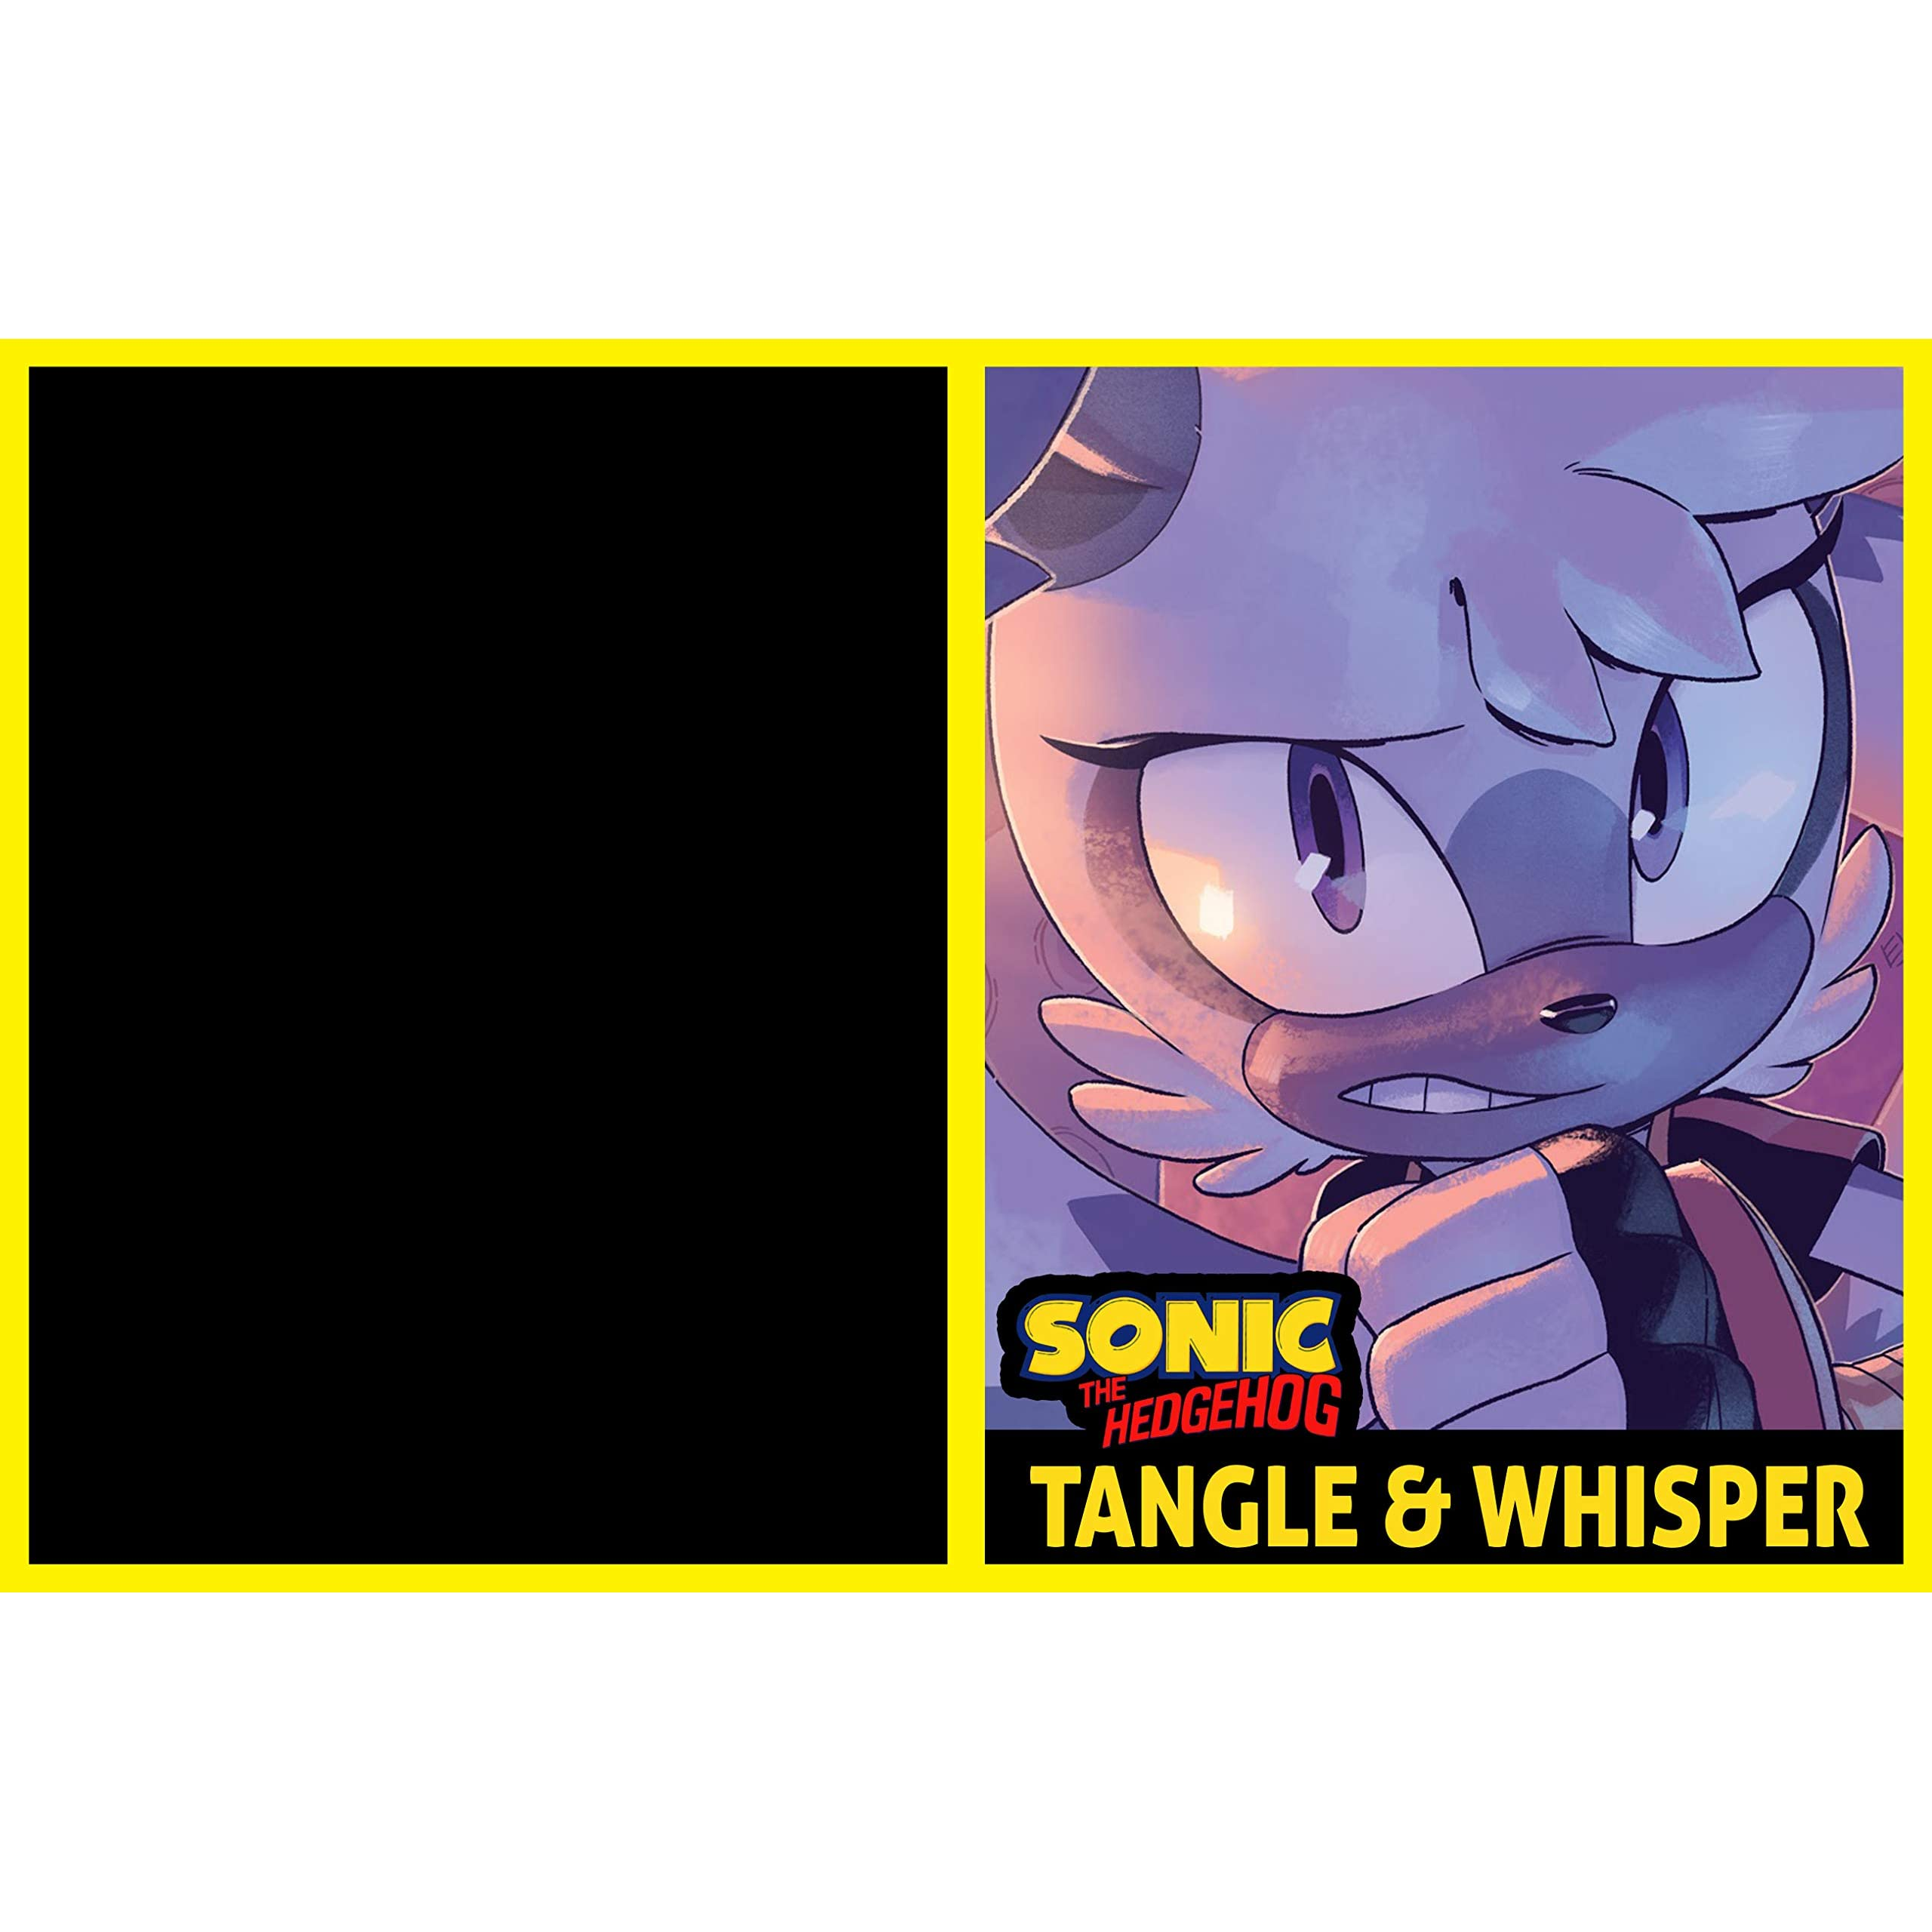 Sonic The Hedgehog Sonic Tangle Whisper Comic Book By Andrew Mcdonald